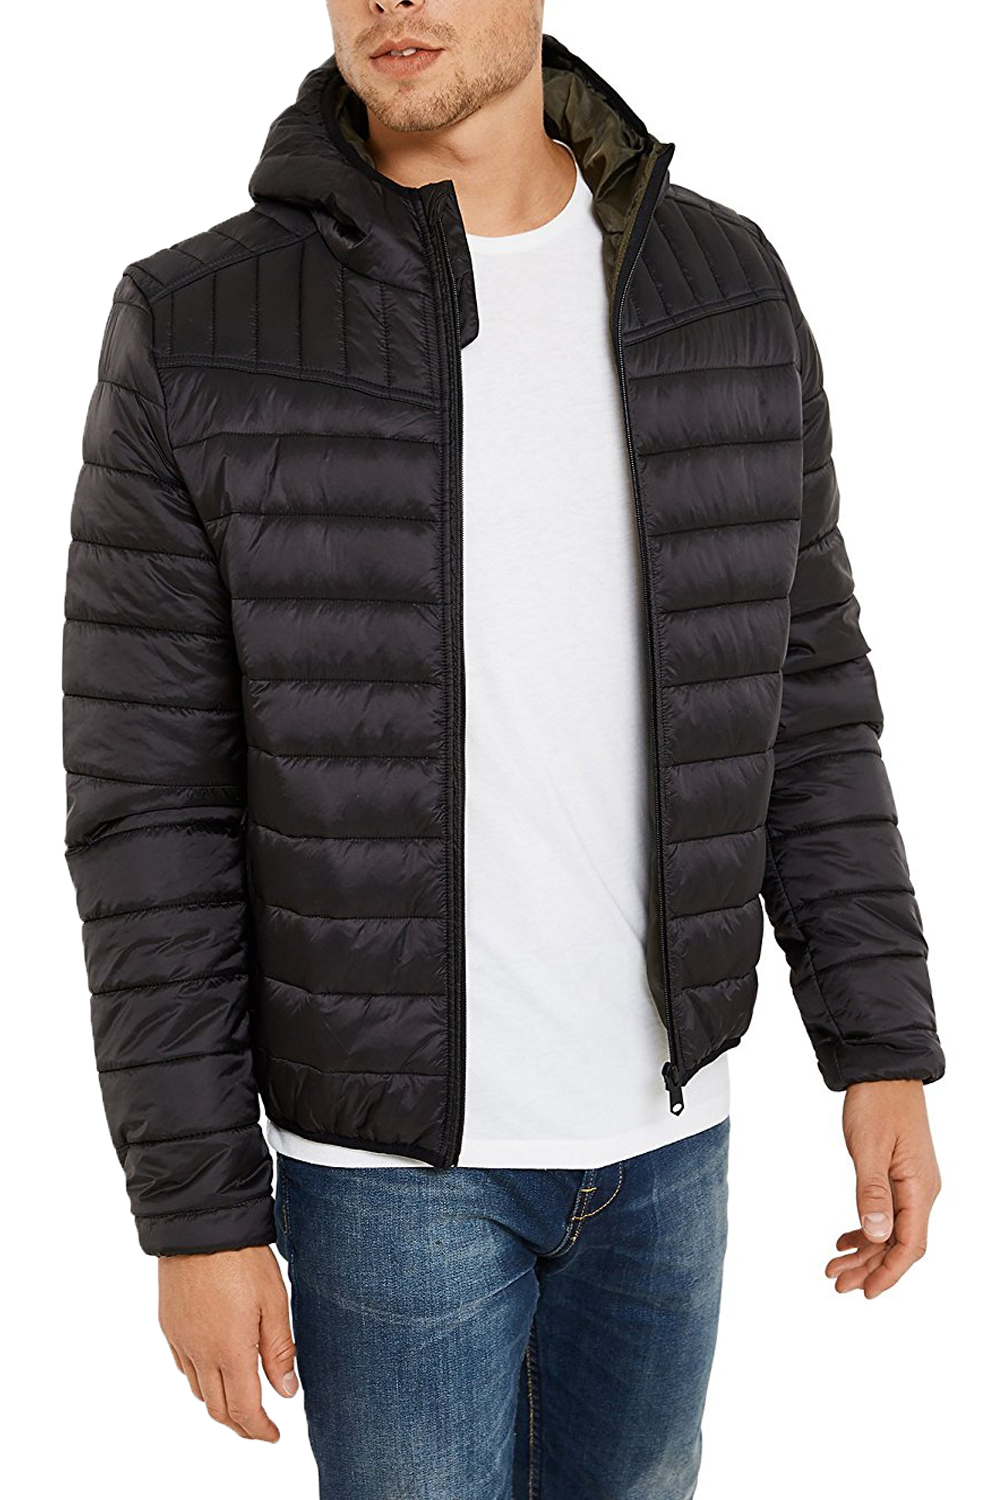 Threadbare Mens Terrier Quilted Coat Padded Hooded MA1 Zip Through ... : mens quilted bomber jacket - Adamdwight.com